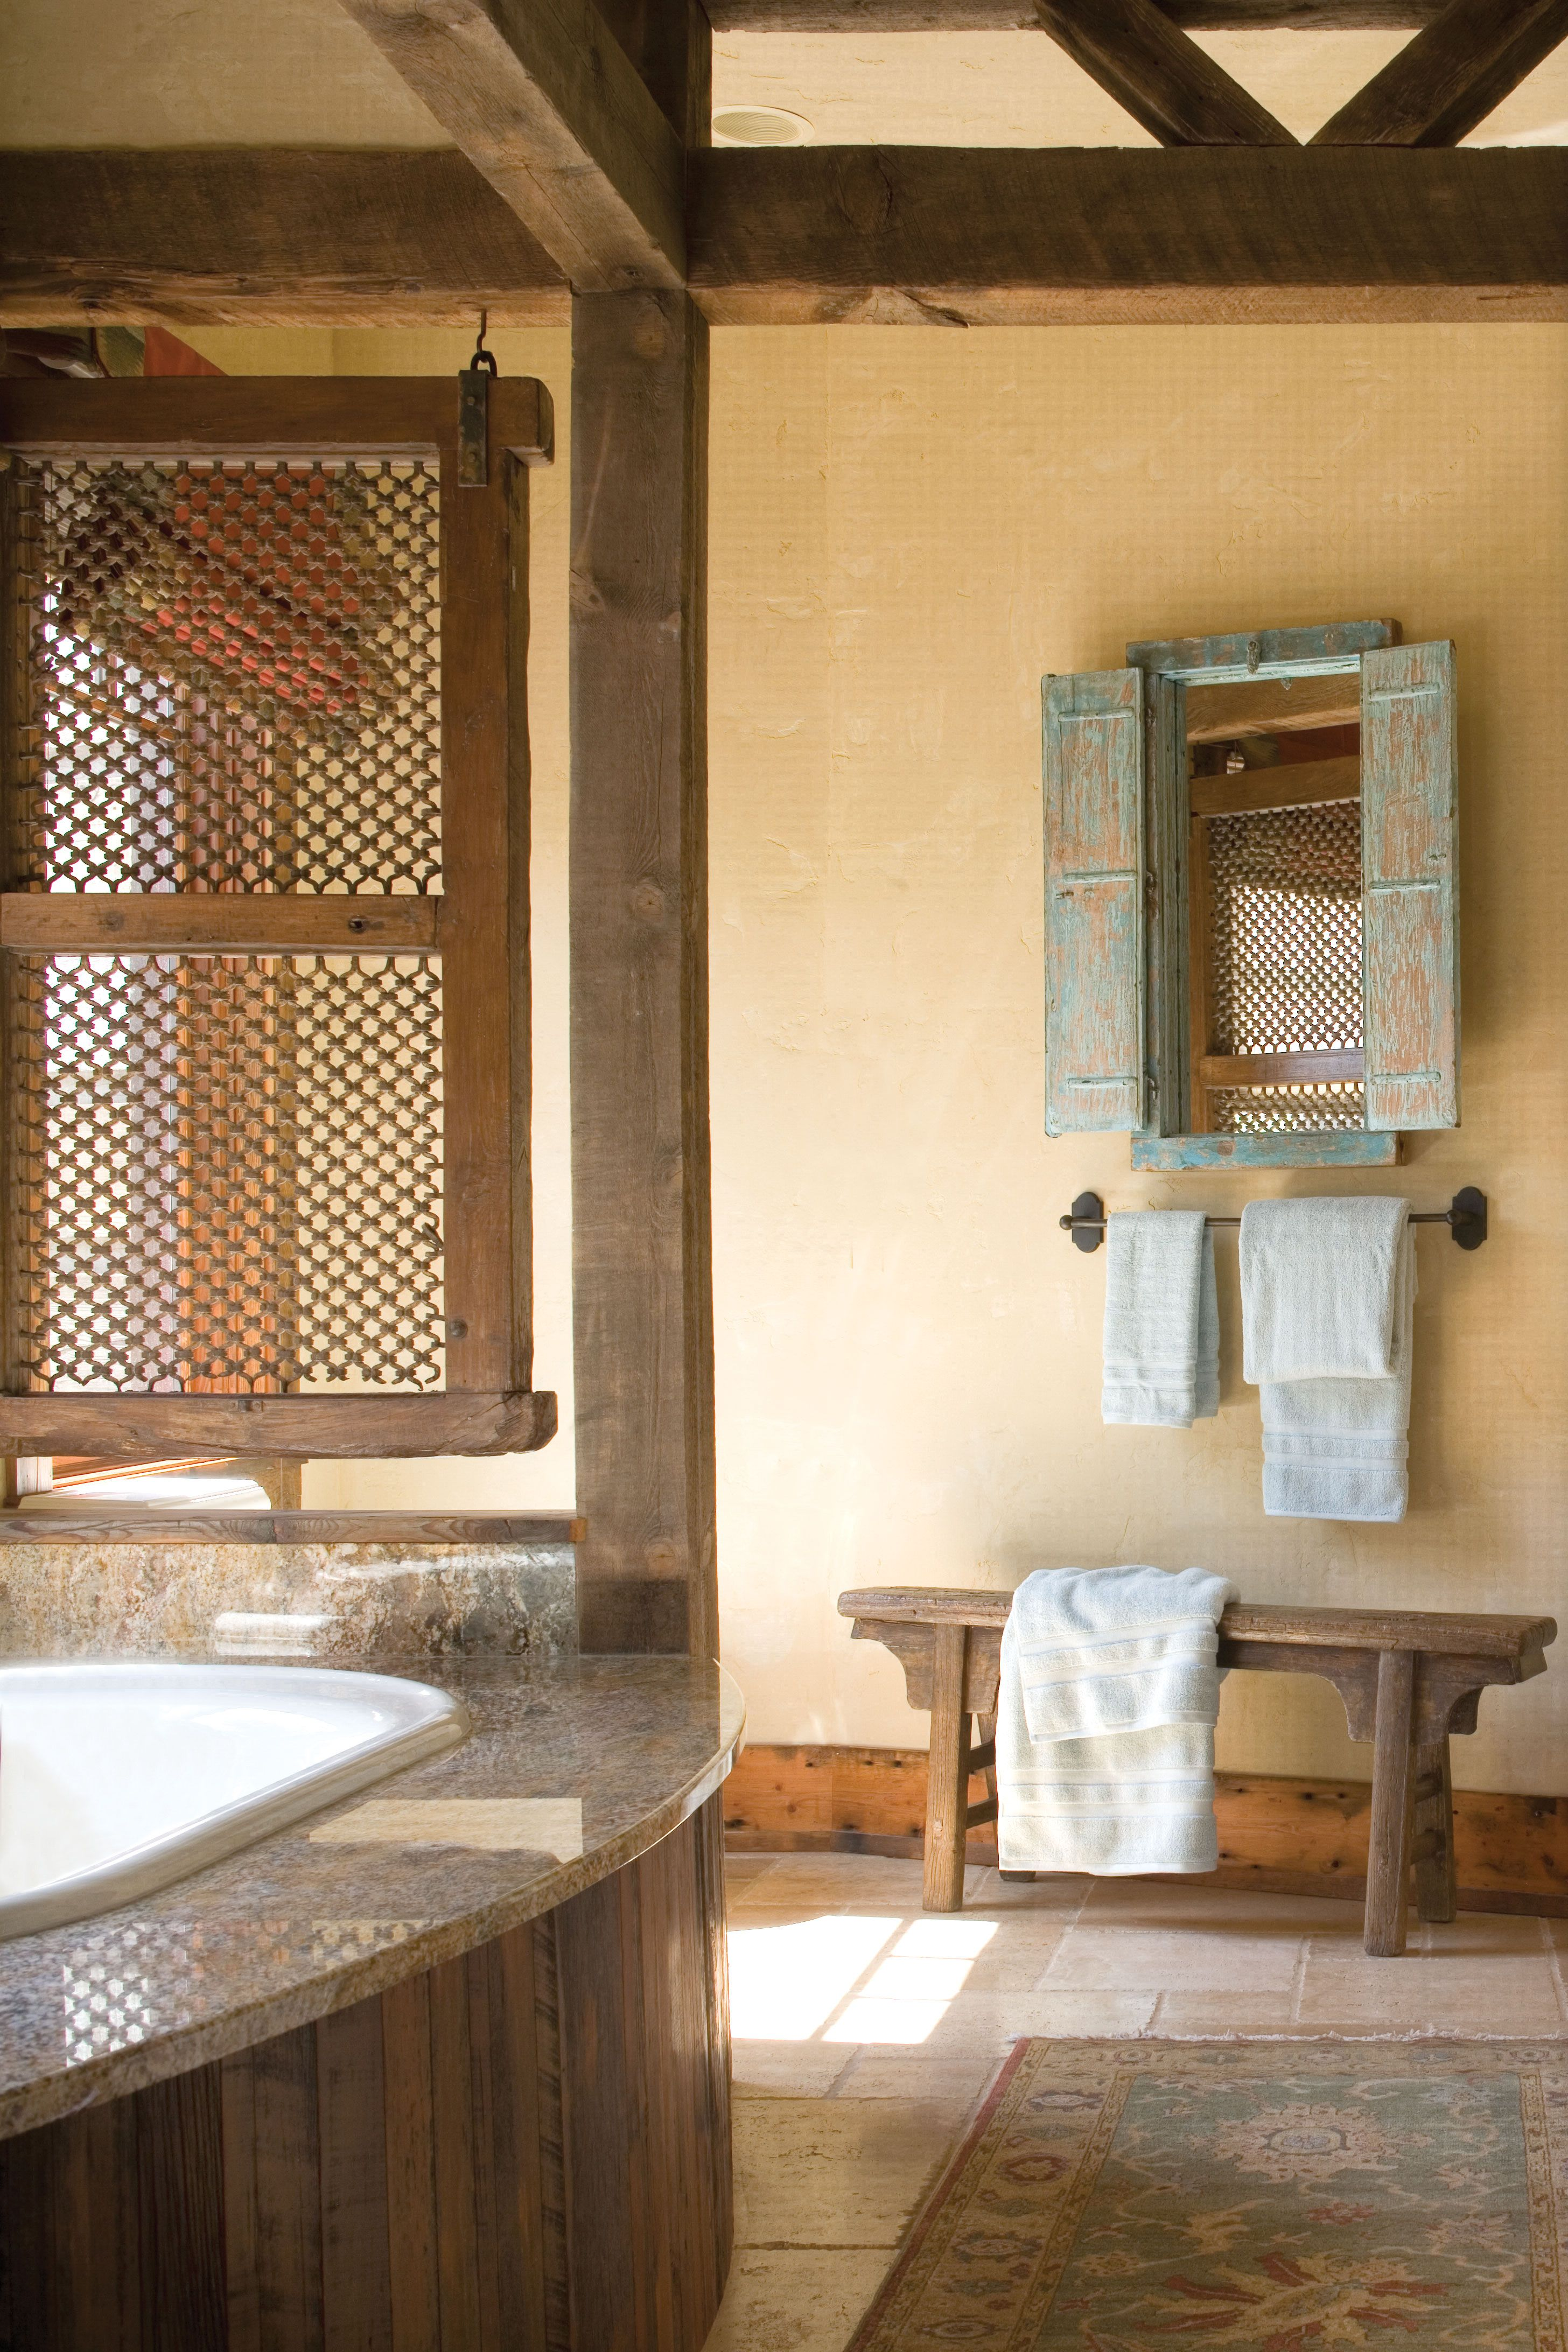 Southwestern Western Style Less Rustic More Clean Rustic